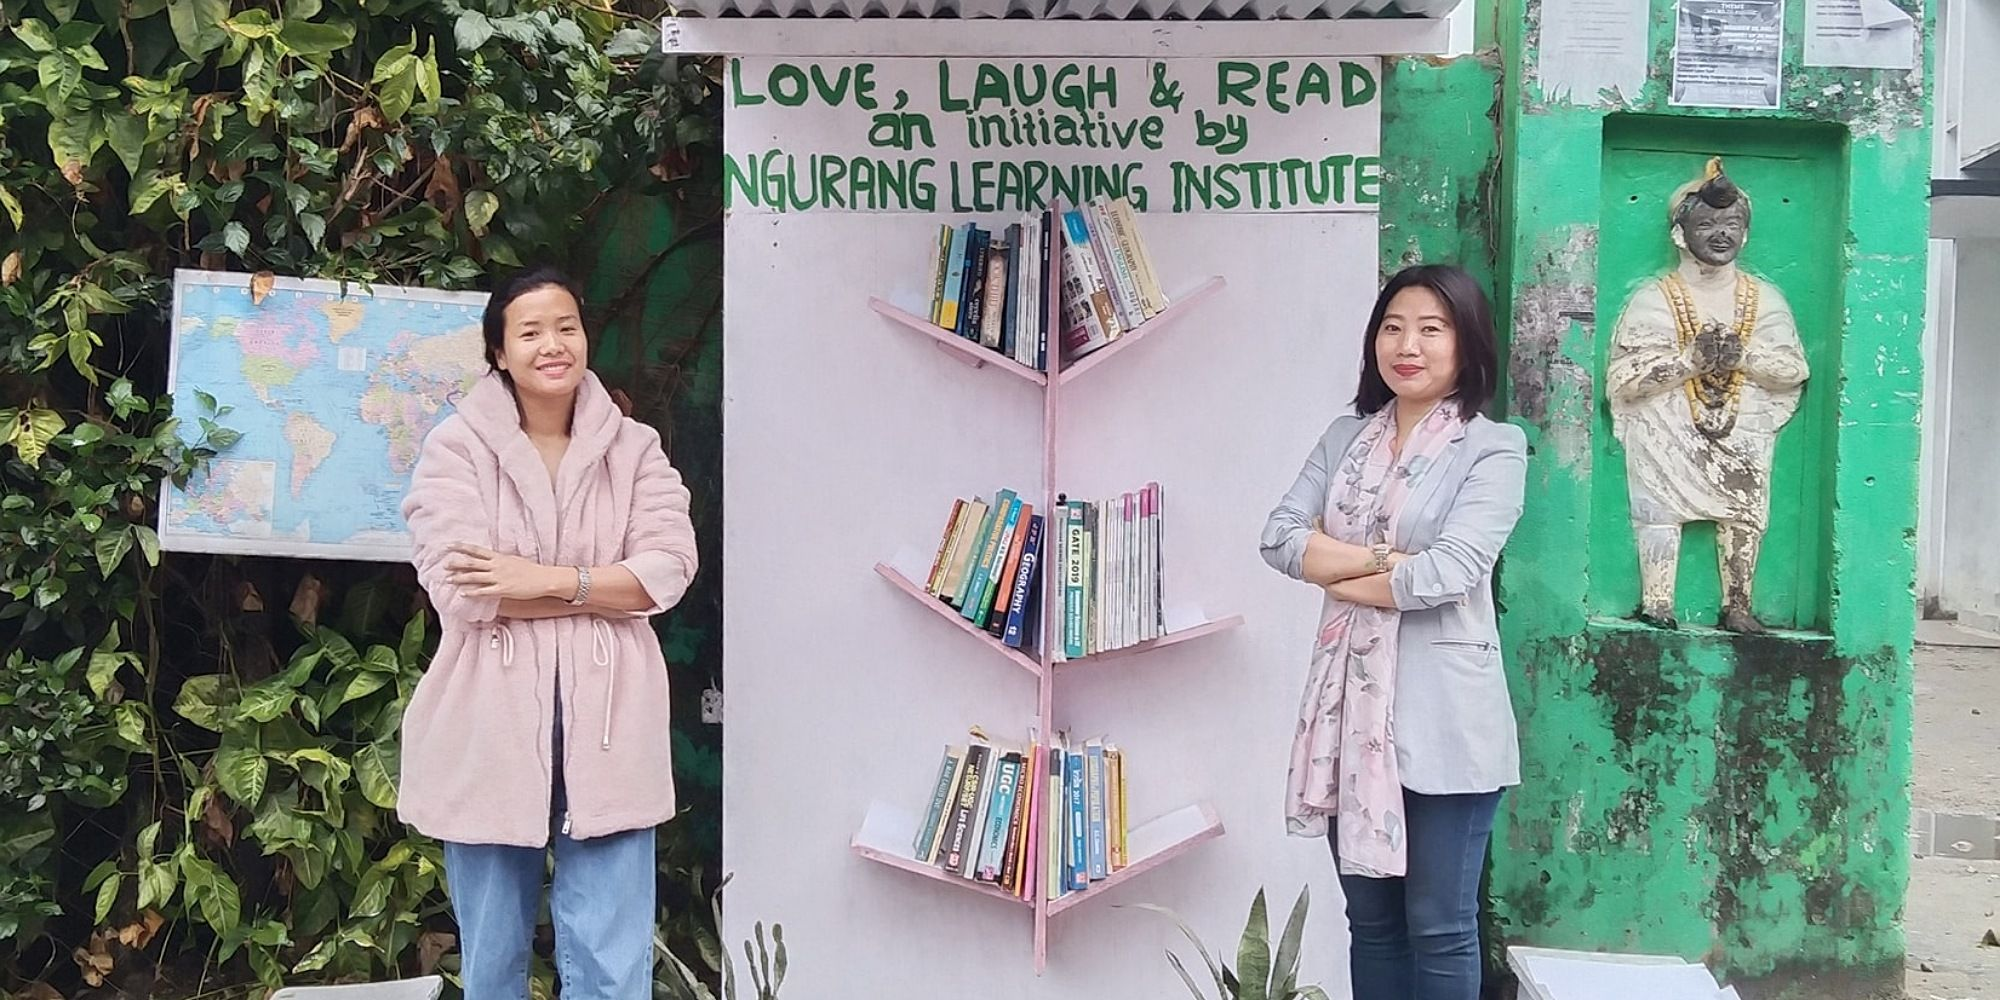 Ngurang Meena sets up a free self-help roadside library to instill the habit of reading in children and adults